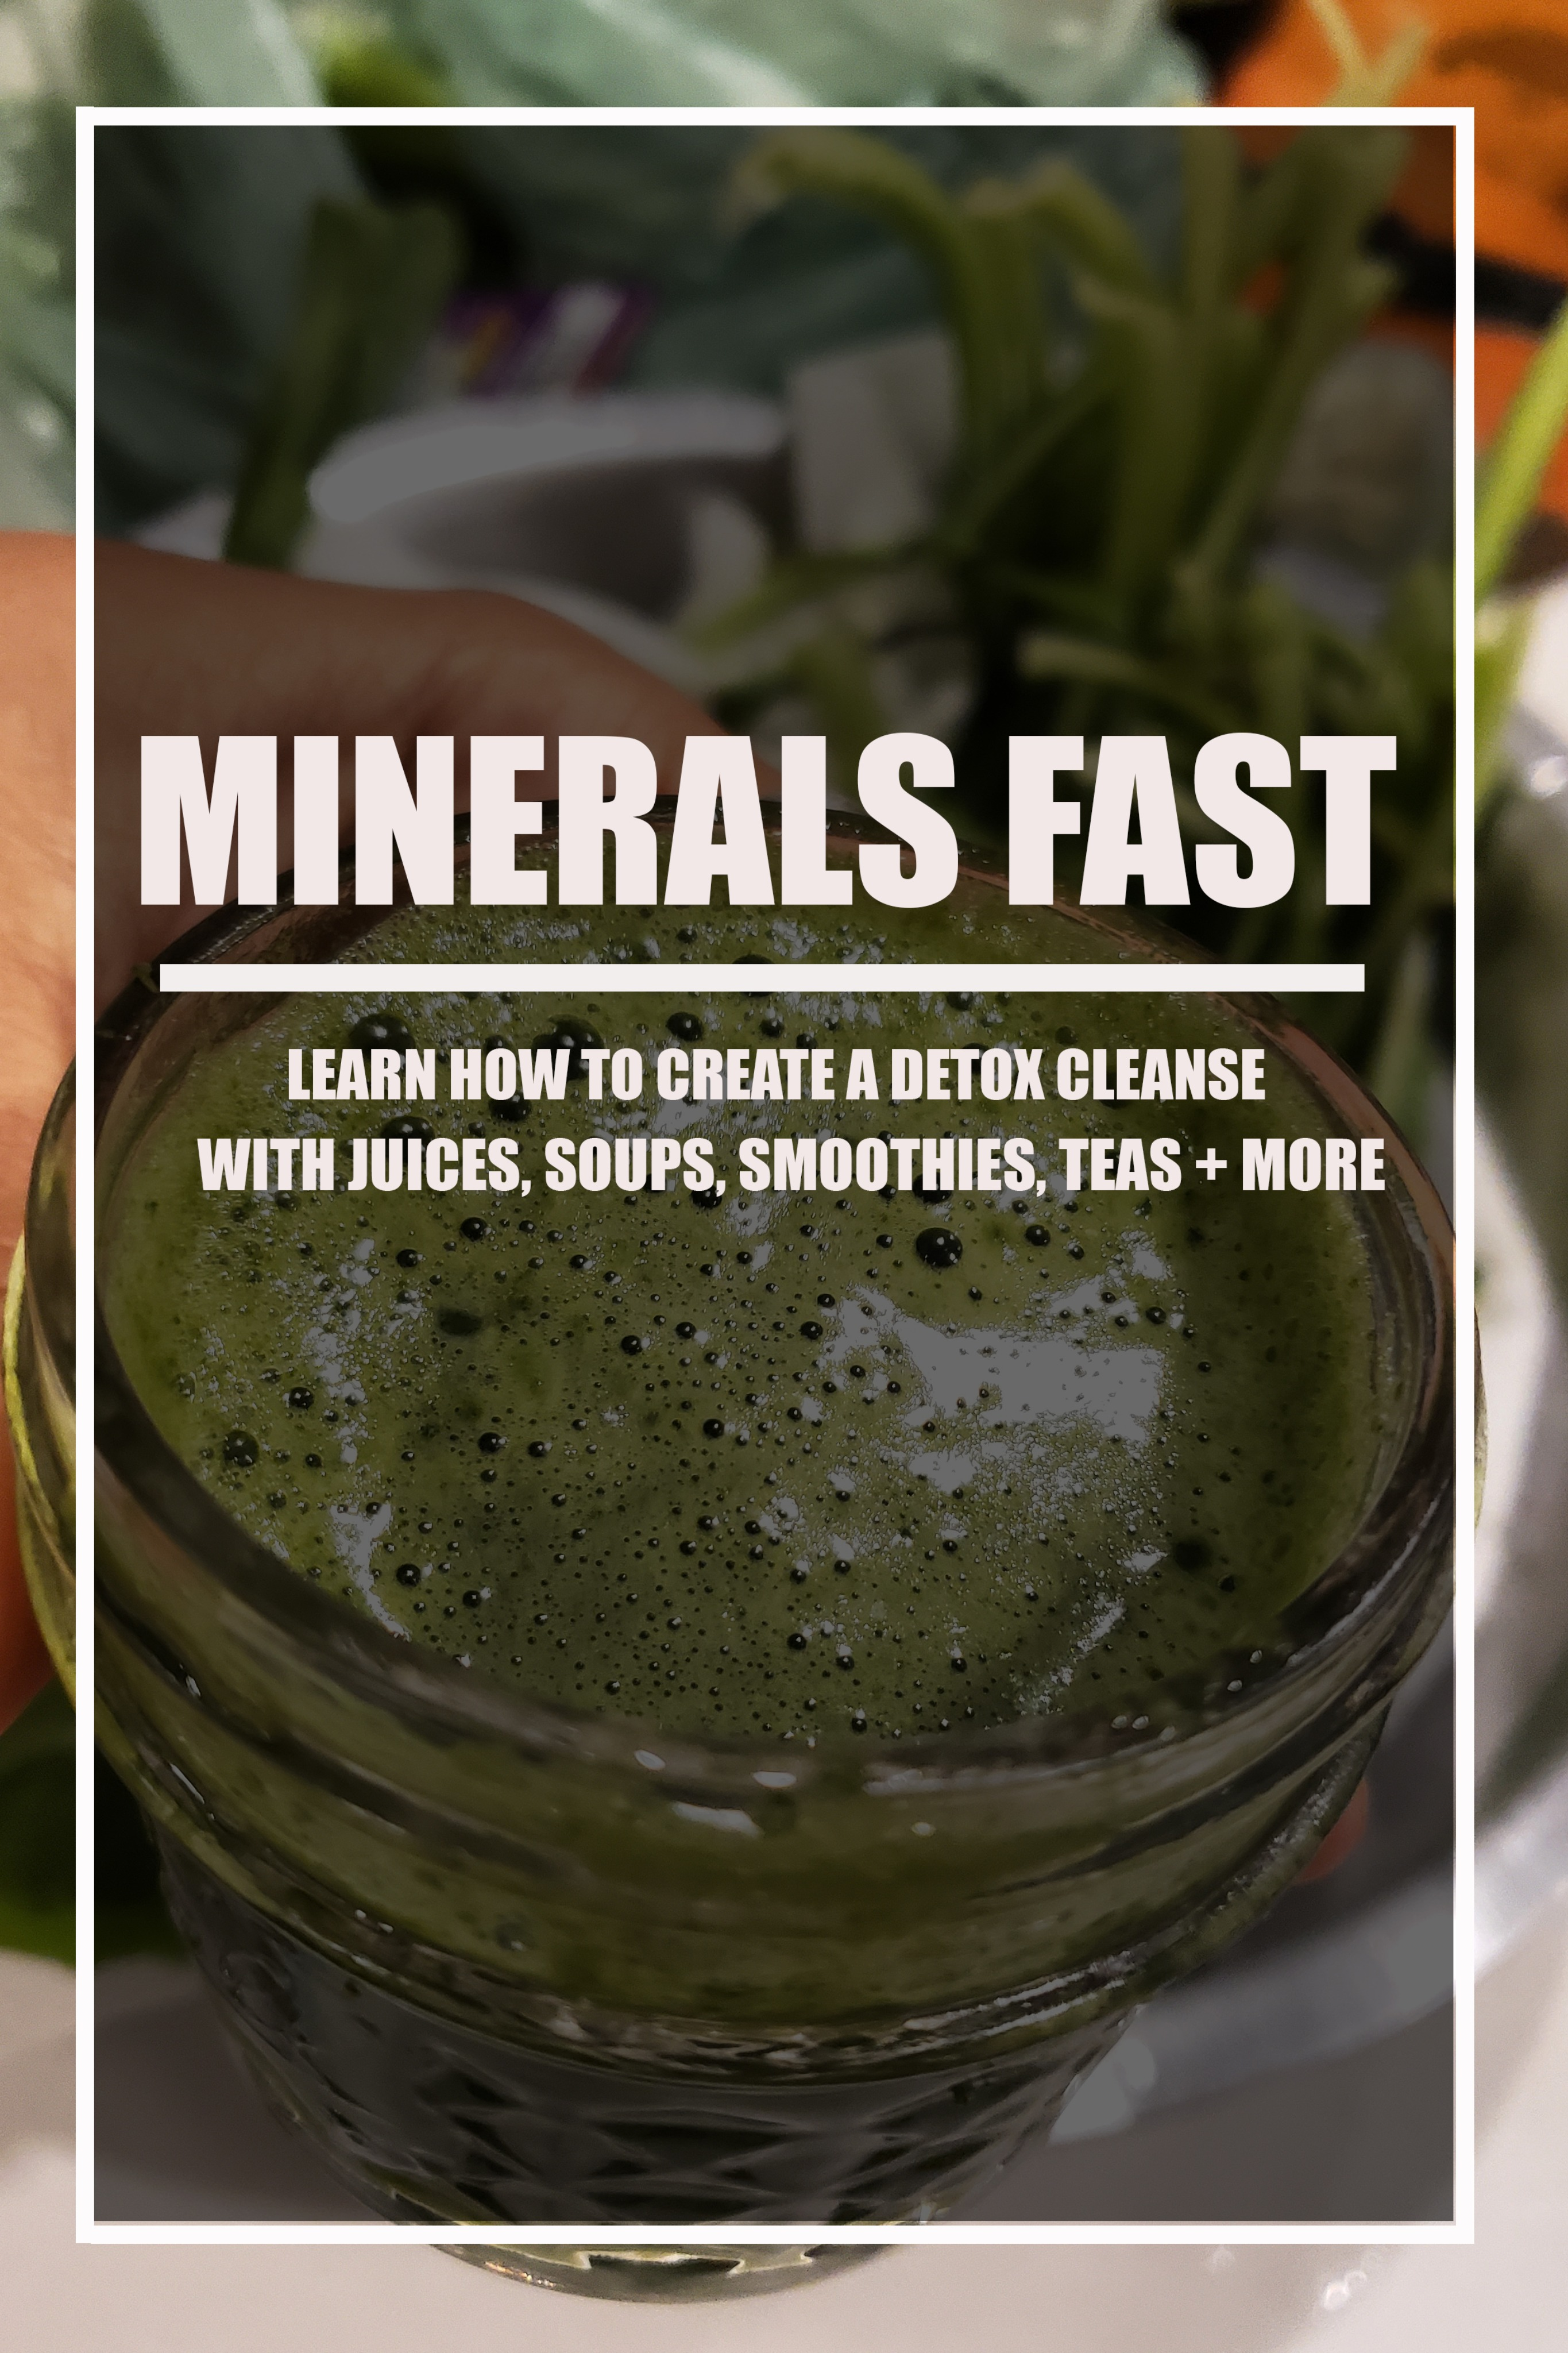 BEYOND VEGAN | MINERALS FAST DIGITAL MINI ECOURSE